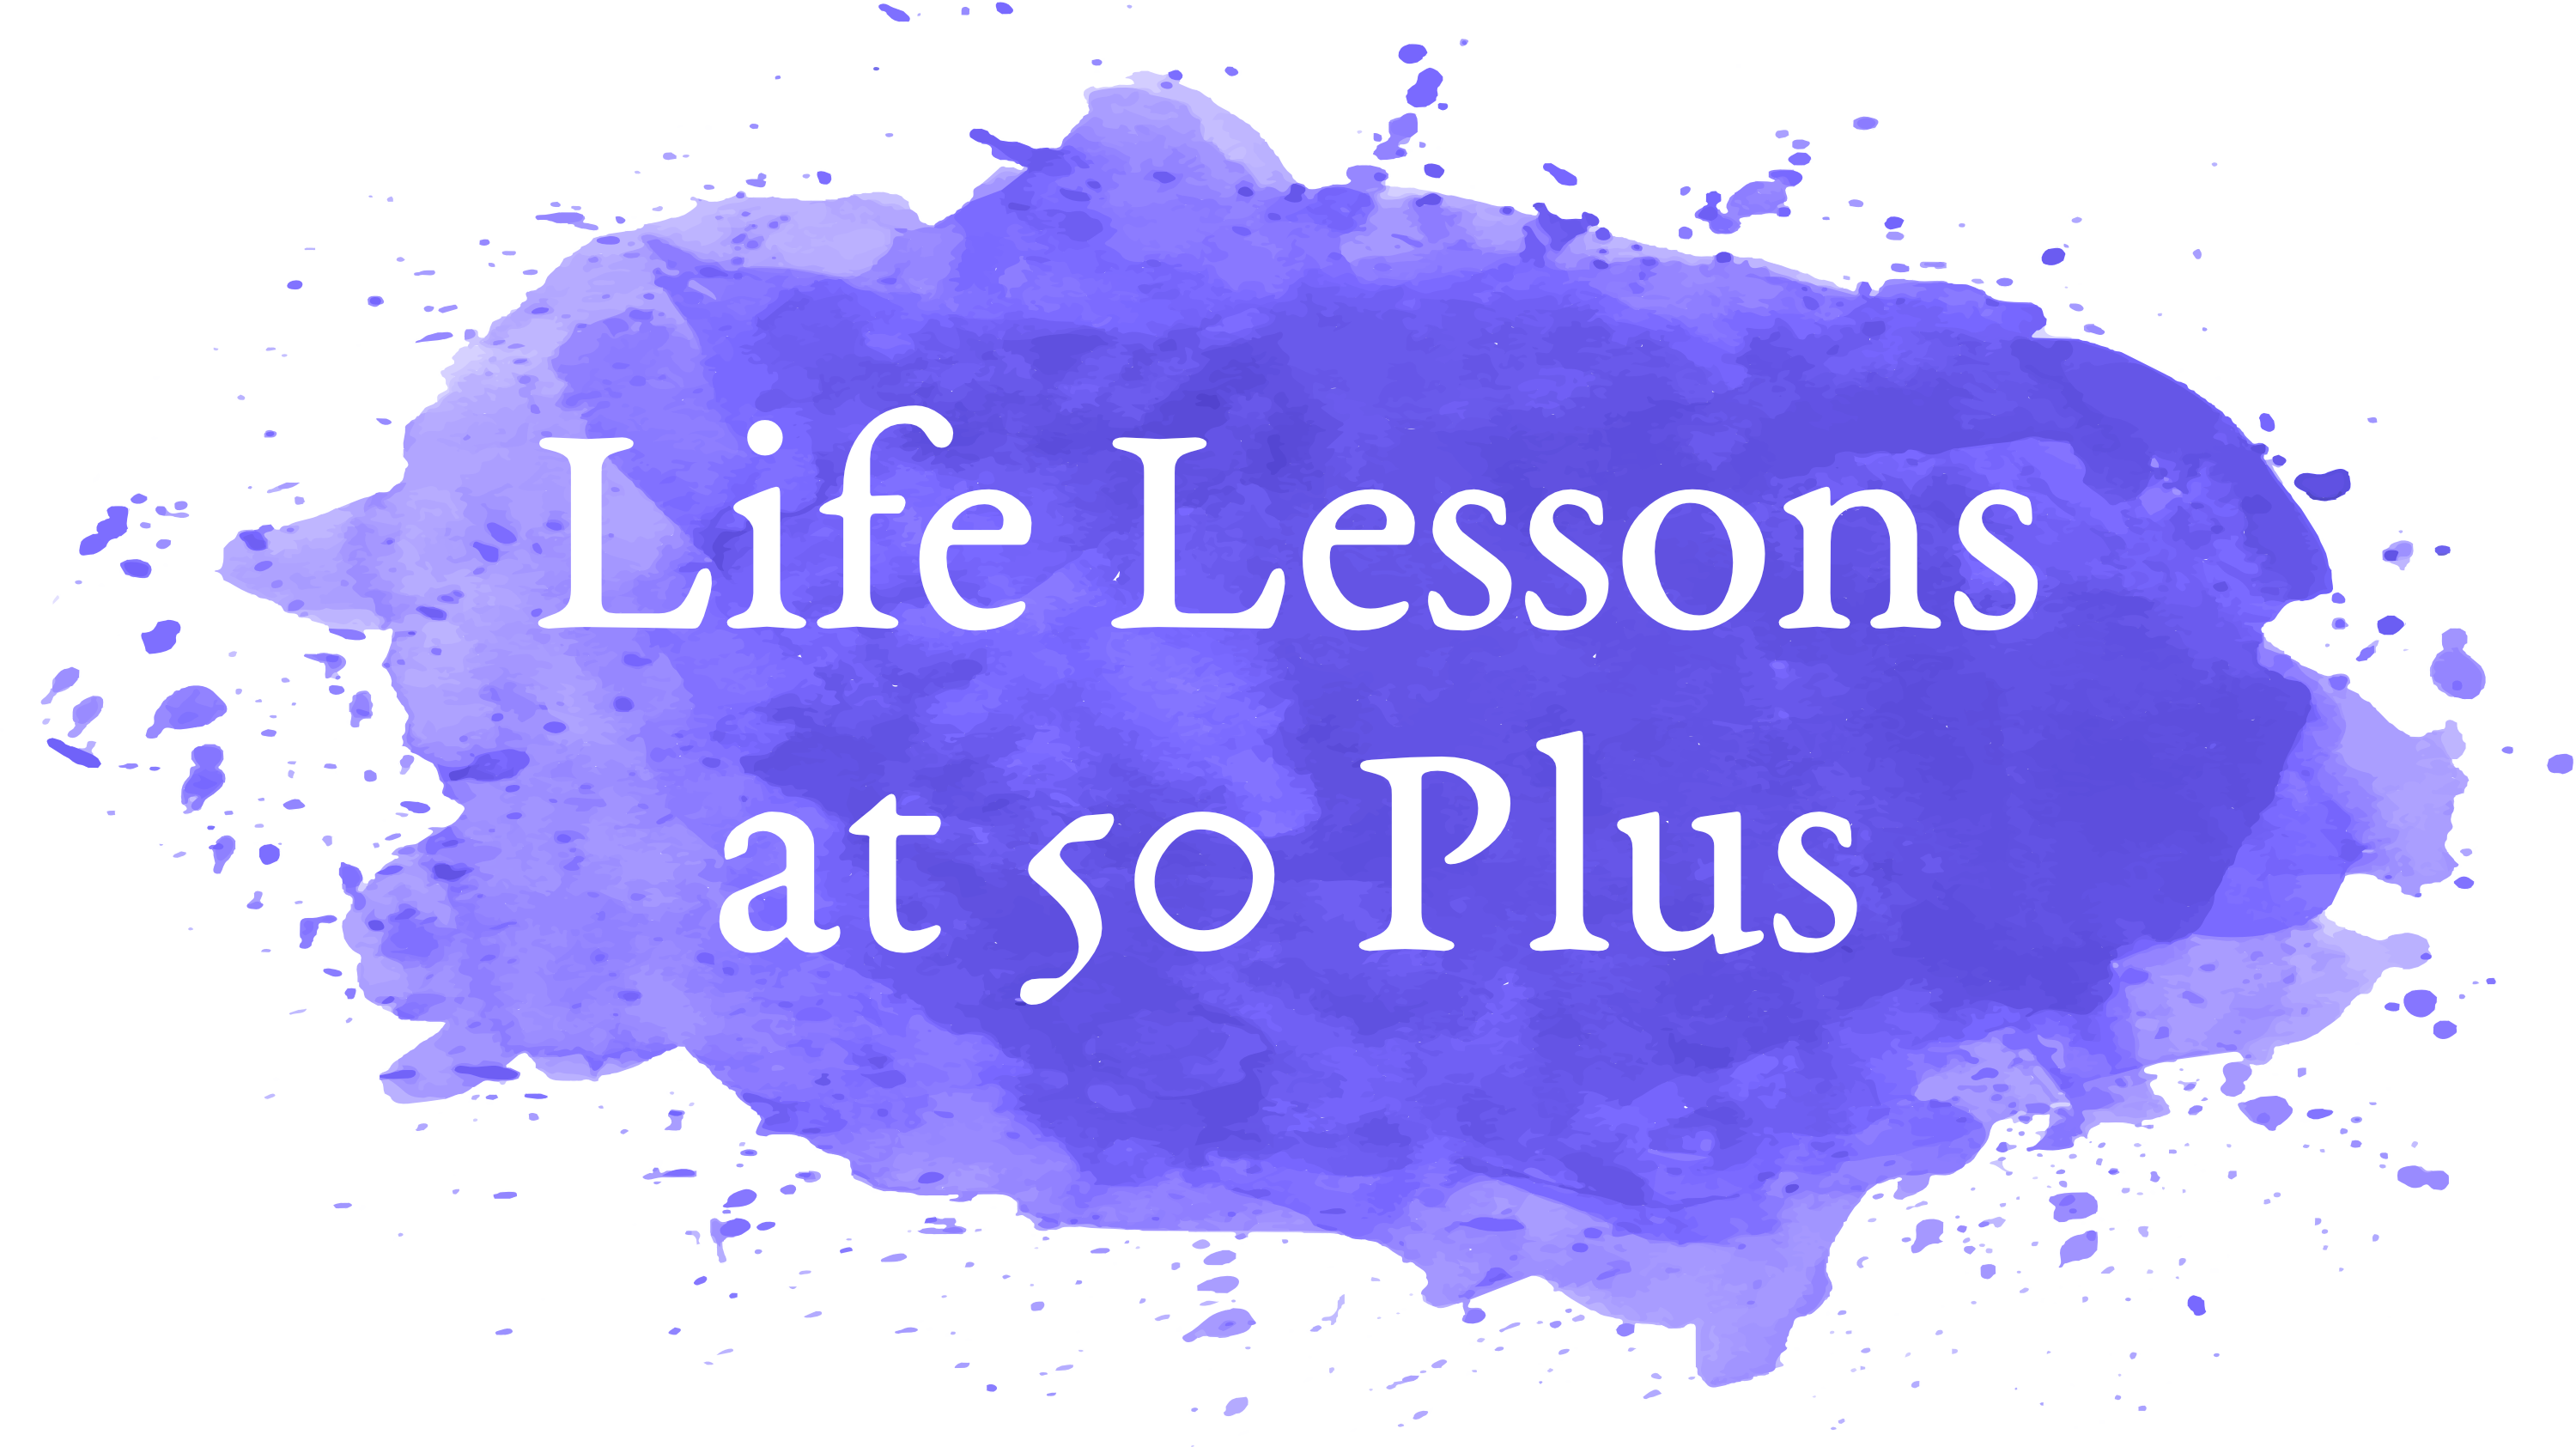 Life Lessons At 50 Plus